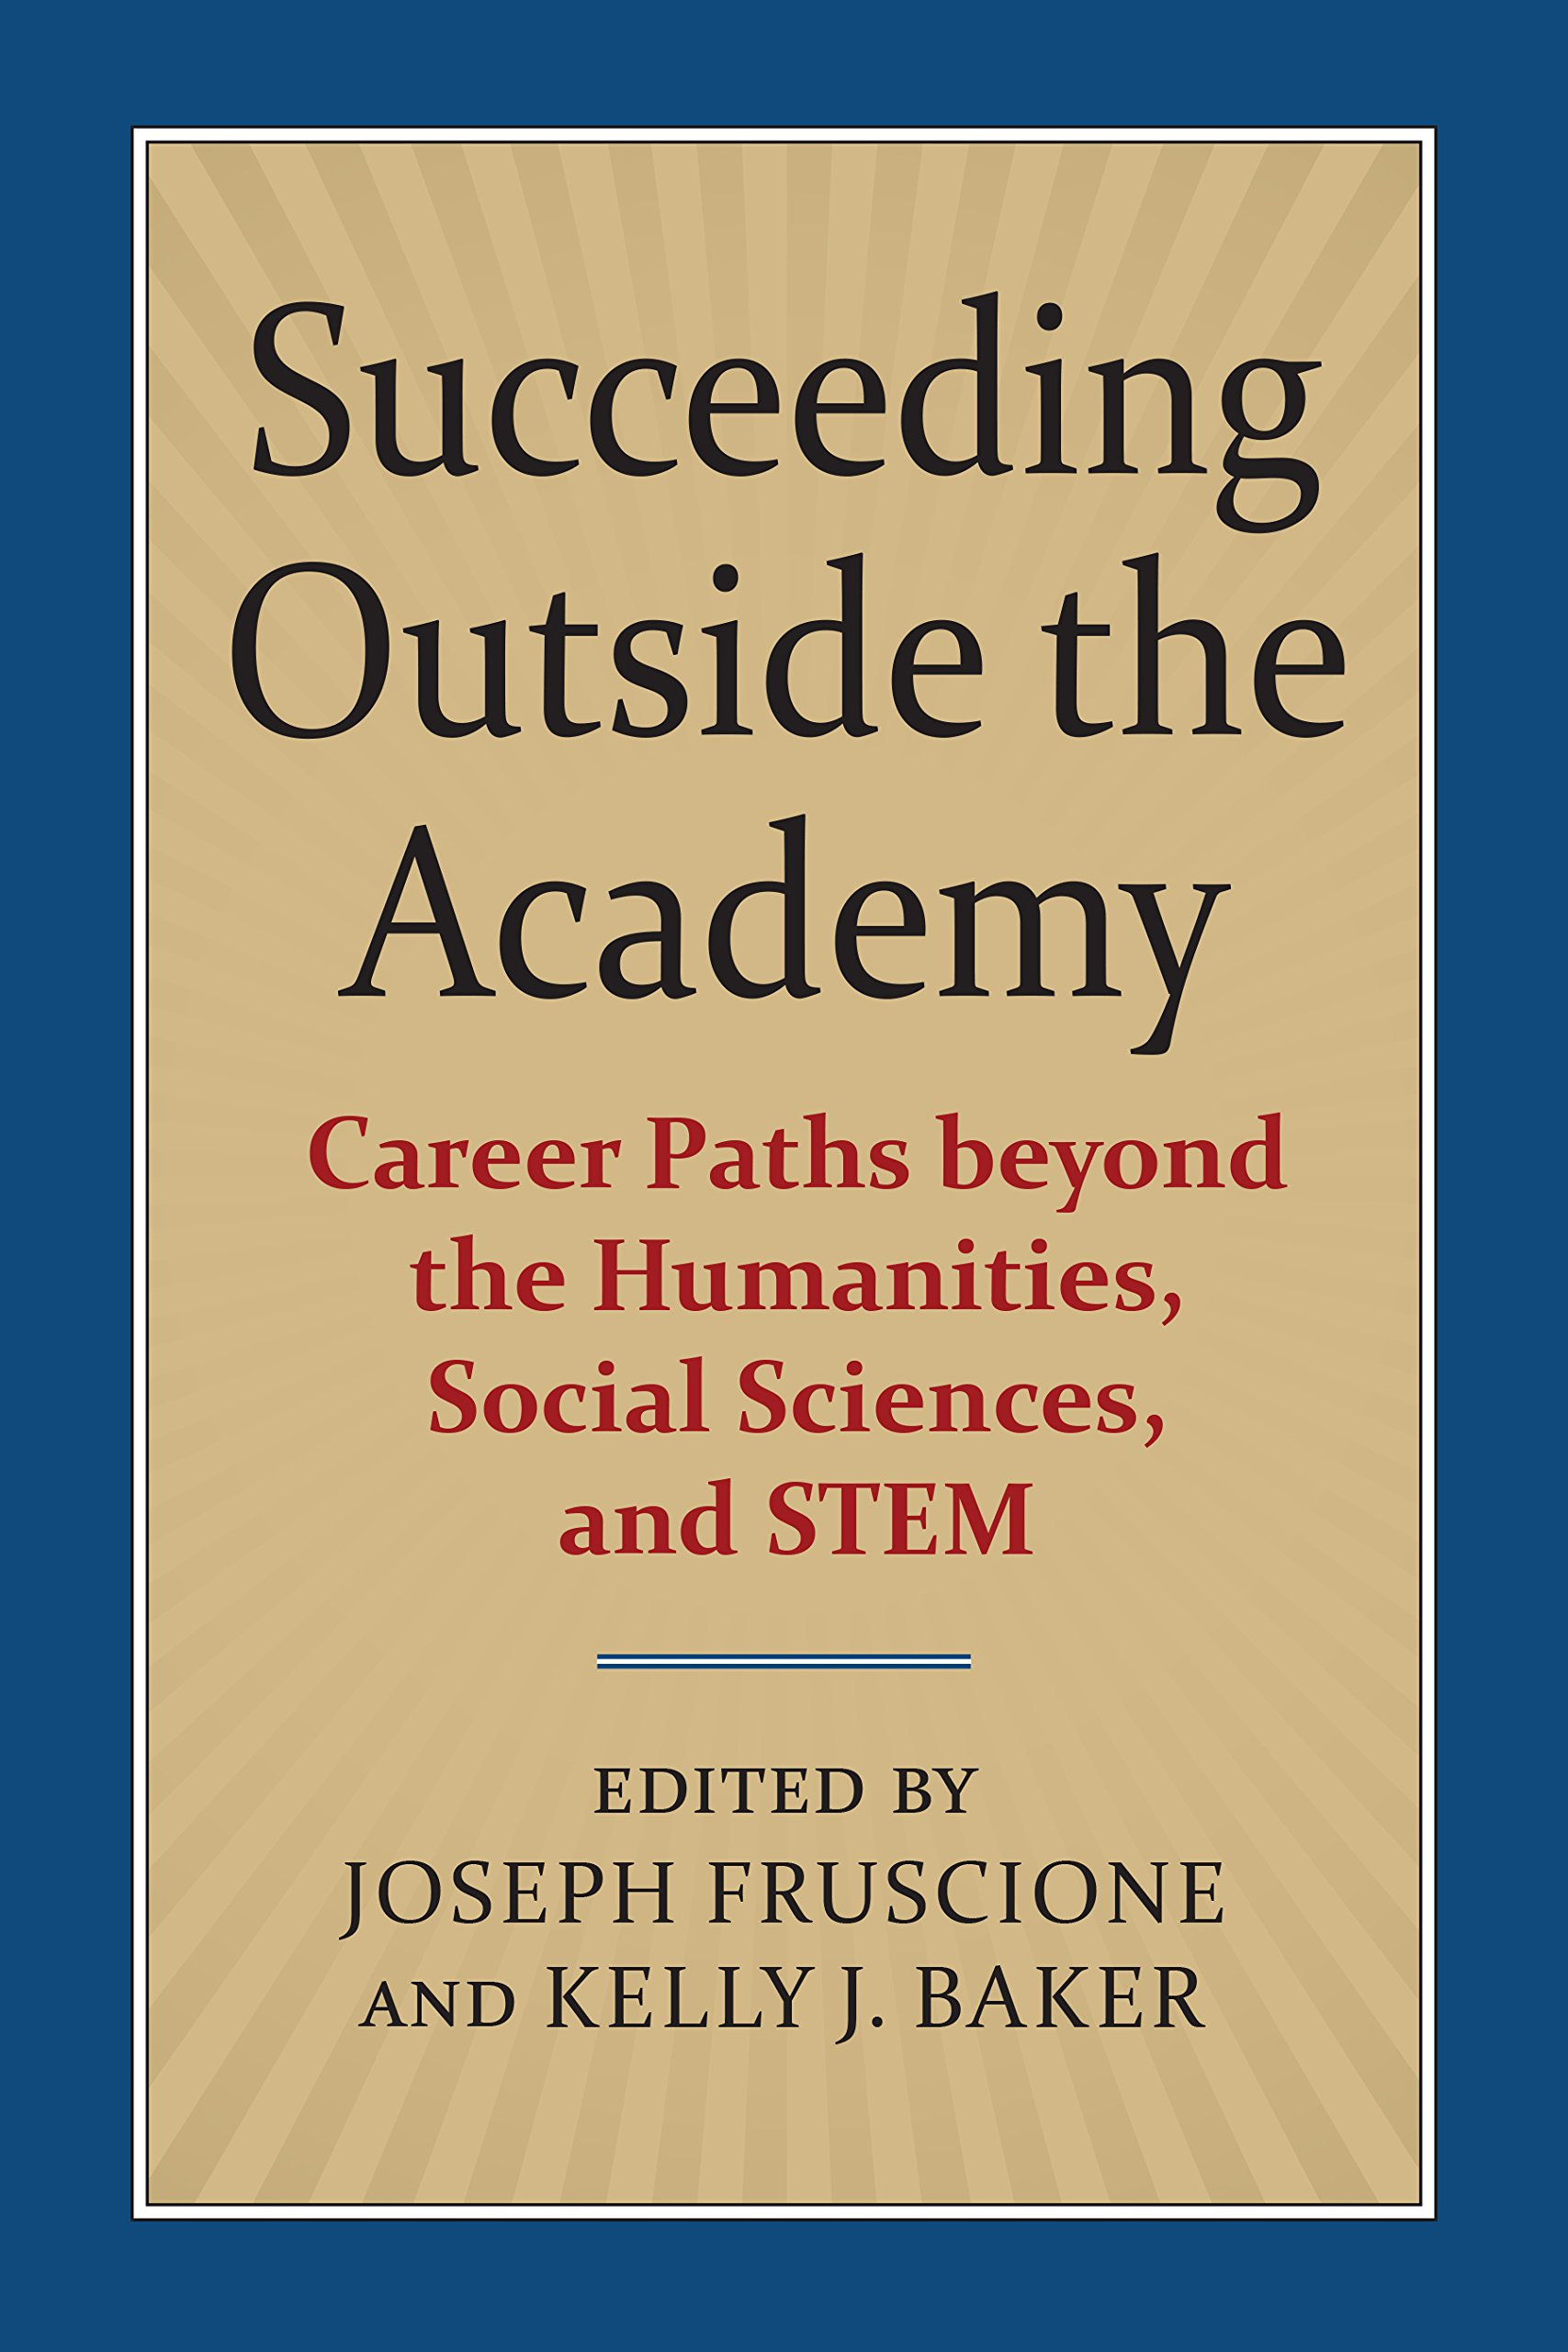 Image for Succeeding Outside the Academy: Career Paths beyond the Humanities, Social Sciences, and STEM